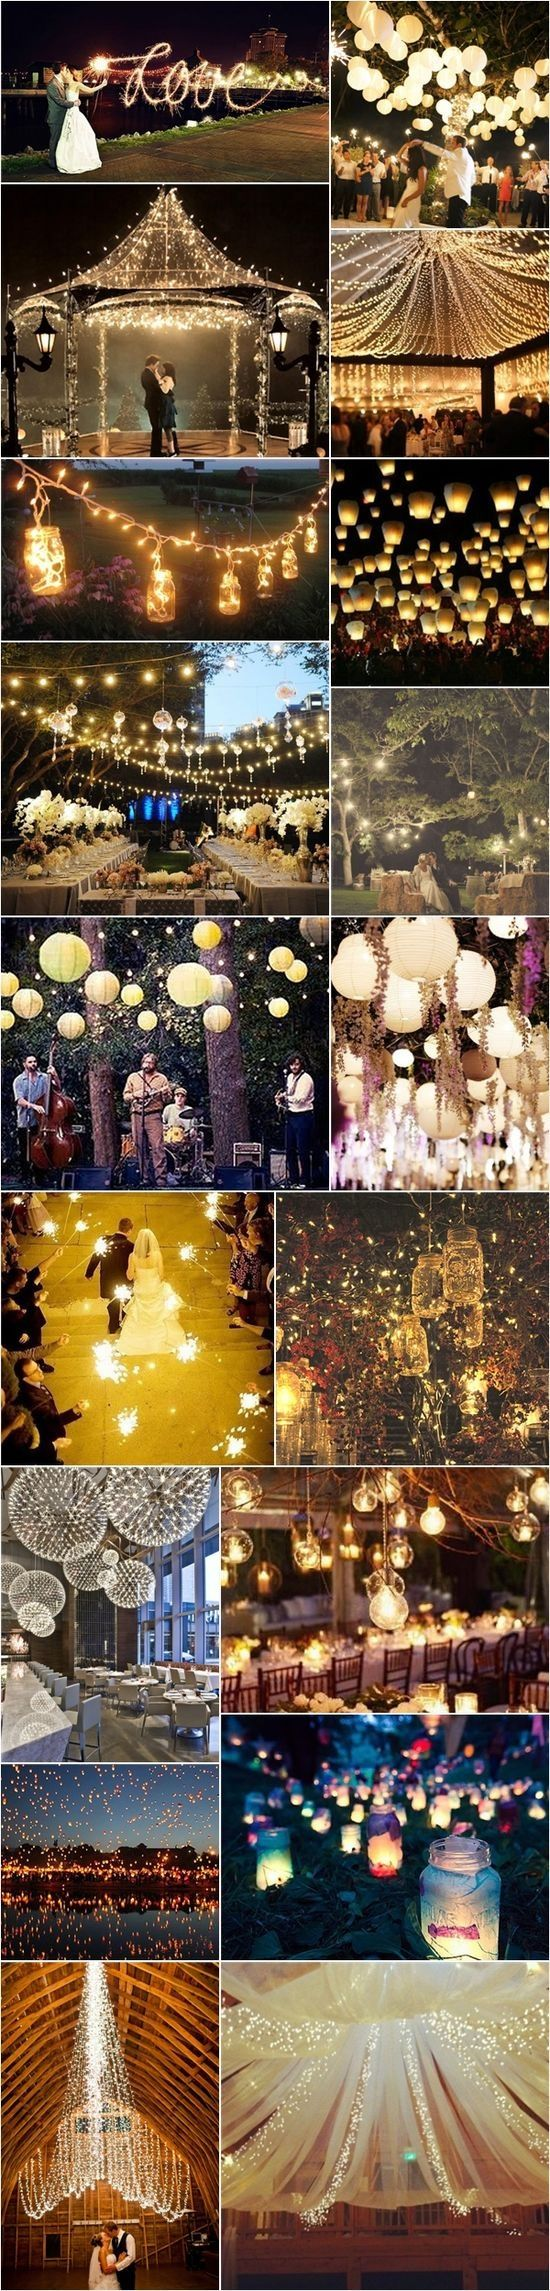 Magical wedding ideas